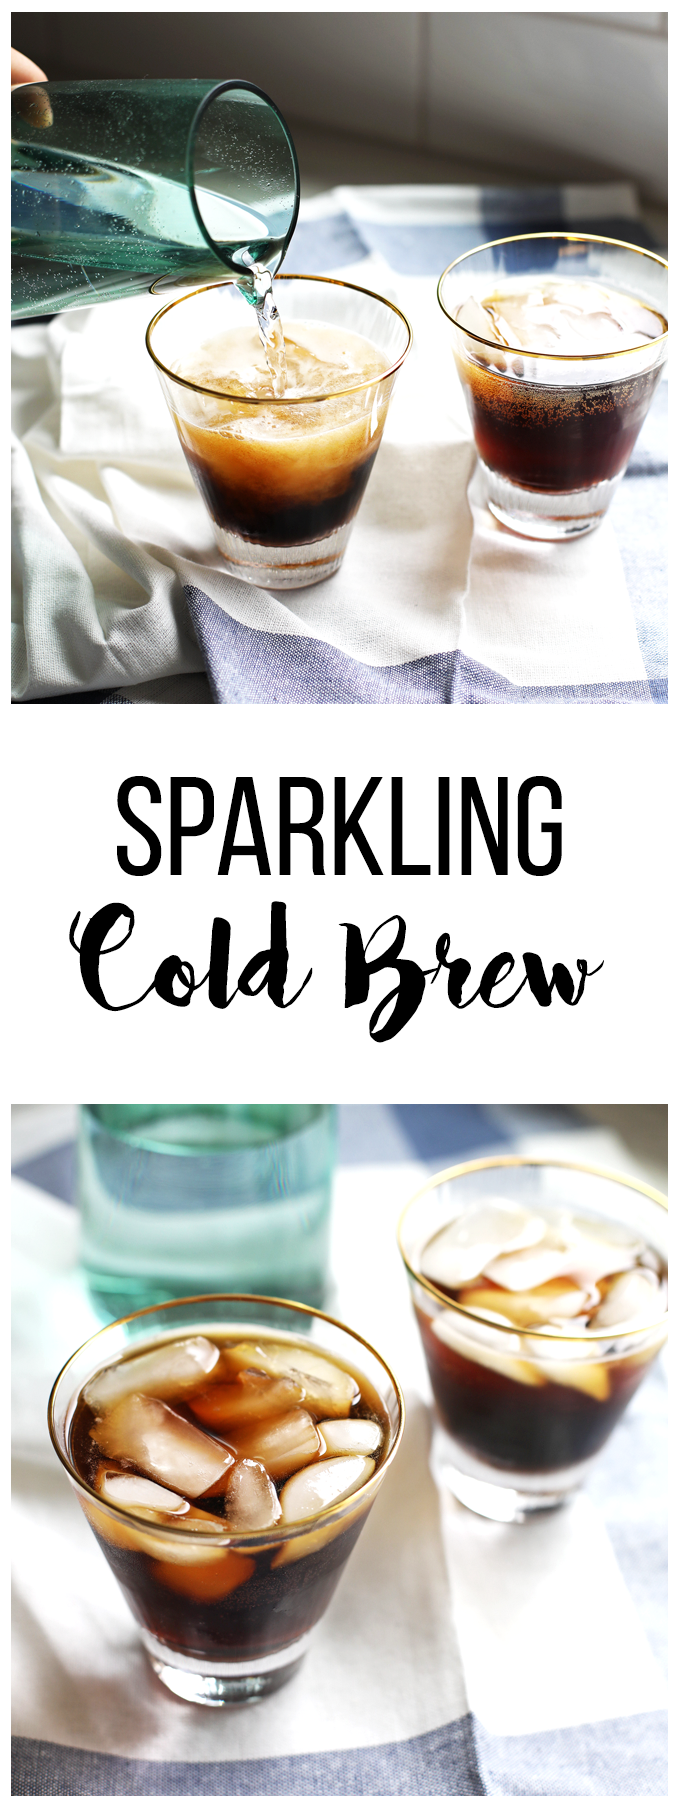 This Sparkling Cold Brew is the perfect cold drink to sip in the afternoon or on a warm morning!